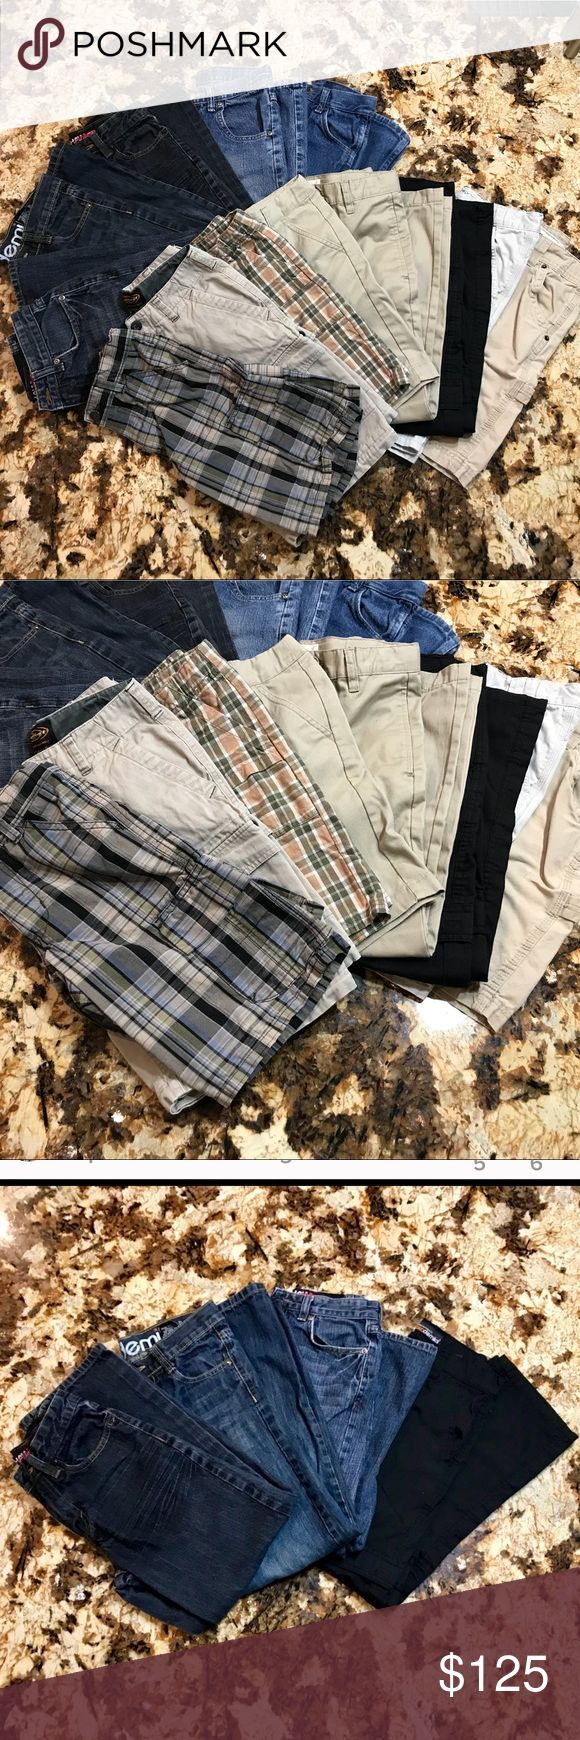 Make an offer!! NWOT/EUC 13 Piece Big Boy Bundle! 13 bottoms, size 10. Most new without tag or  EUC. Five pairs of jeans, one pair black cargo pants,two pairs of plaid shorts,two pairs tan cargo shorts(one pair of shorts has a few small stains.) ,one pair khaki shorts and one pair khaki pants. Brands are a range of Tony Hawk, Akademiks, Lee, Gymboree,etc. Open to reasonable offers. Reasonable is not half of asking price. Bundle for private discount and save on shipping! Bottoms